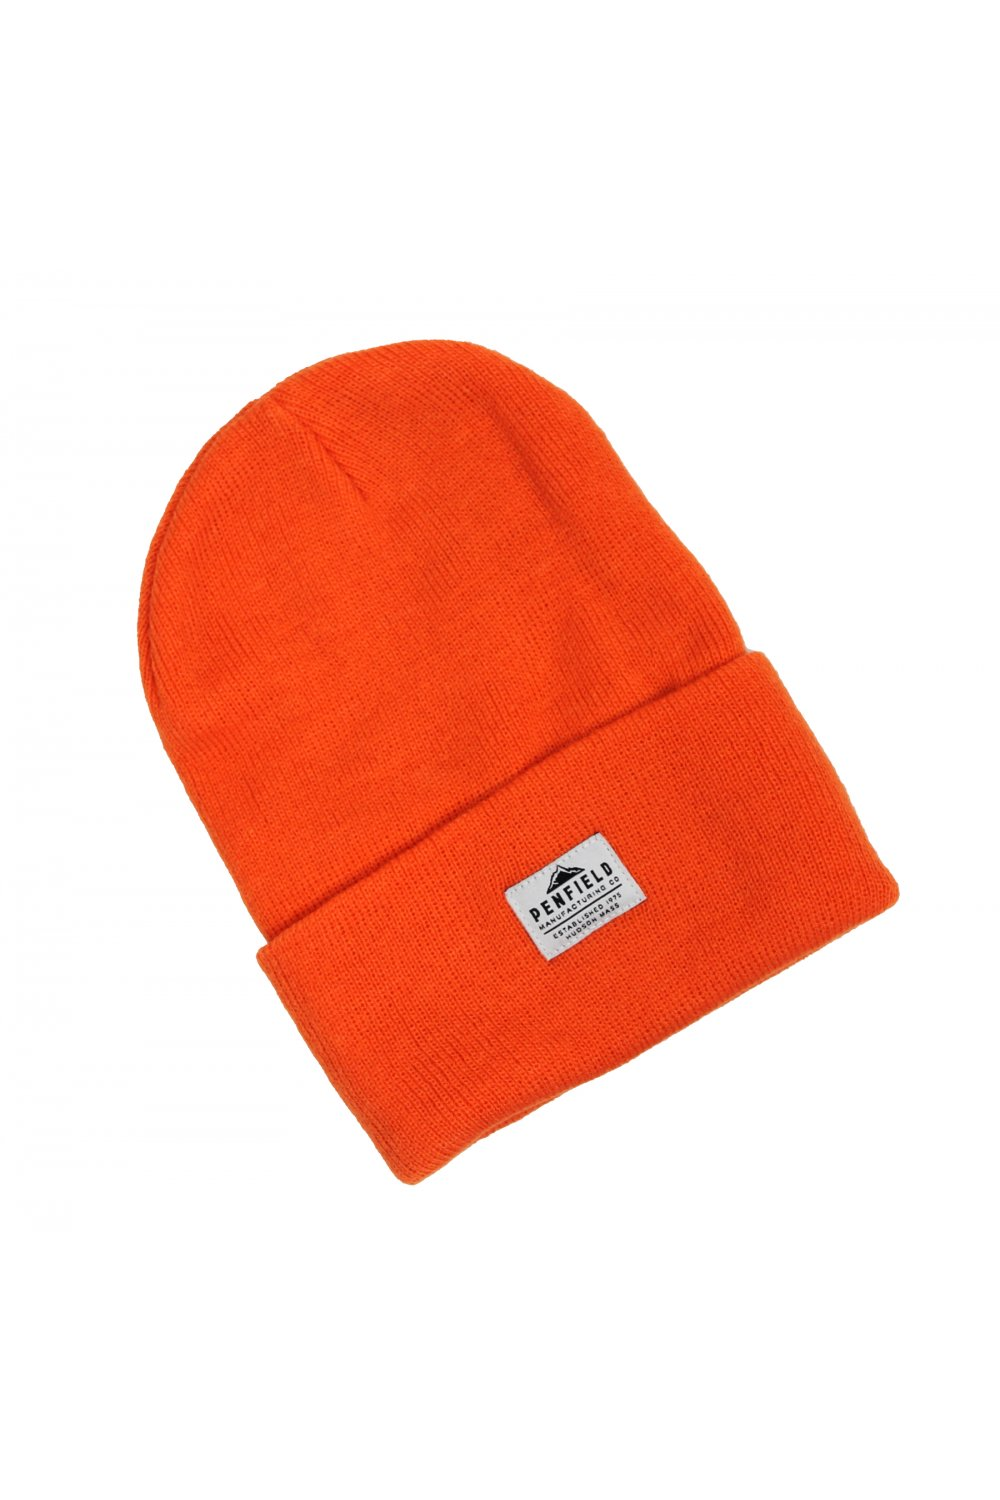 Penfield Classic Beanie (Orange) - Accessories from ThirtySix UK 4a98aacc3521